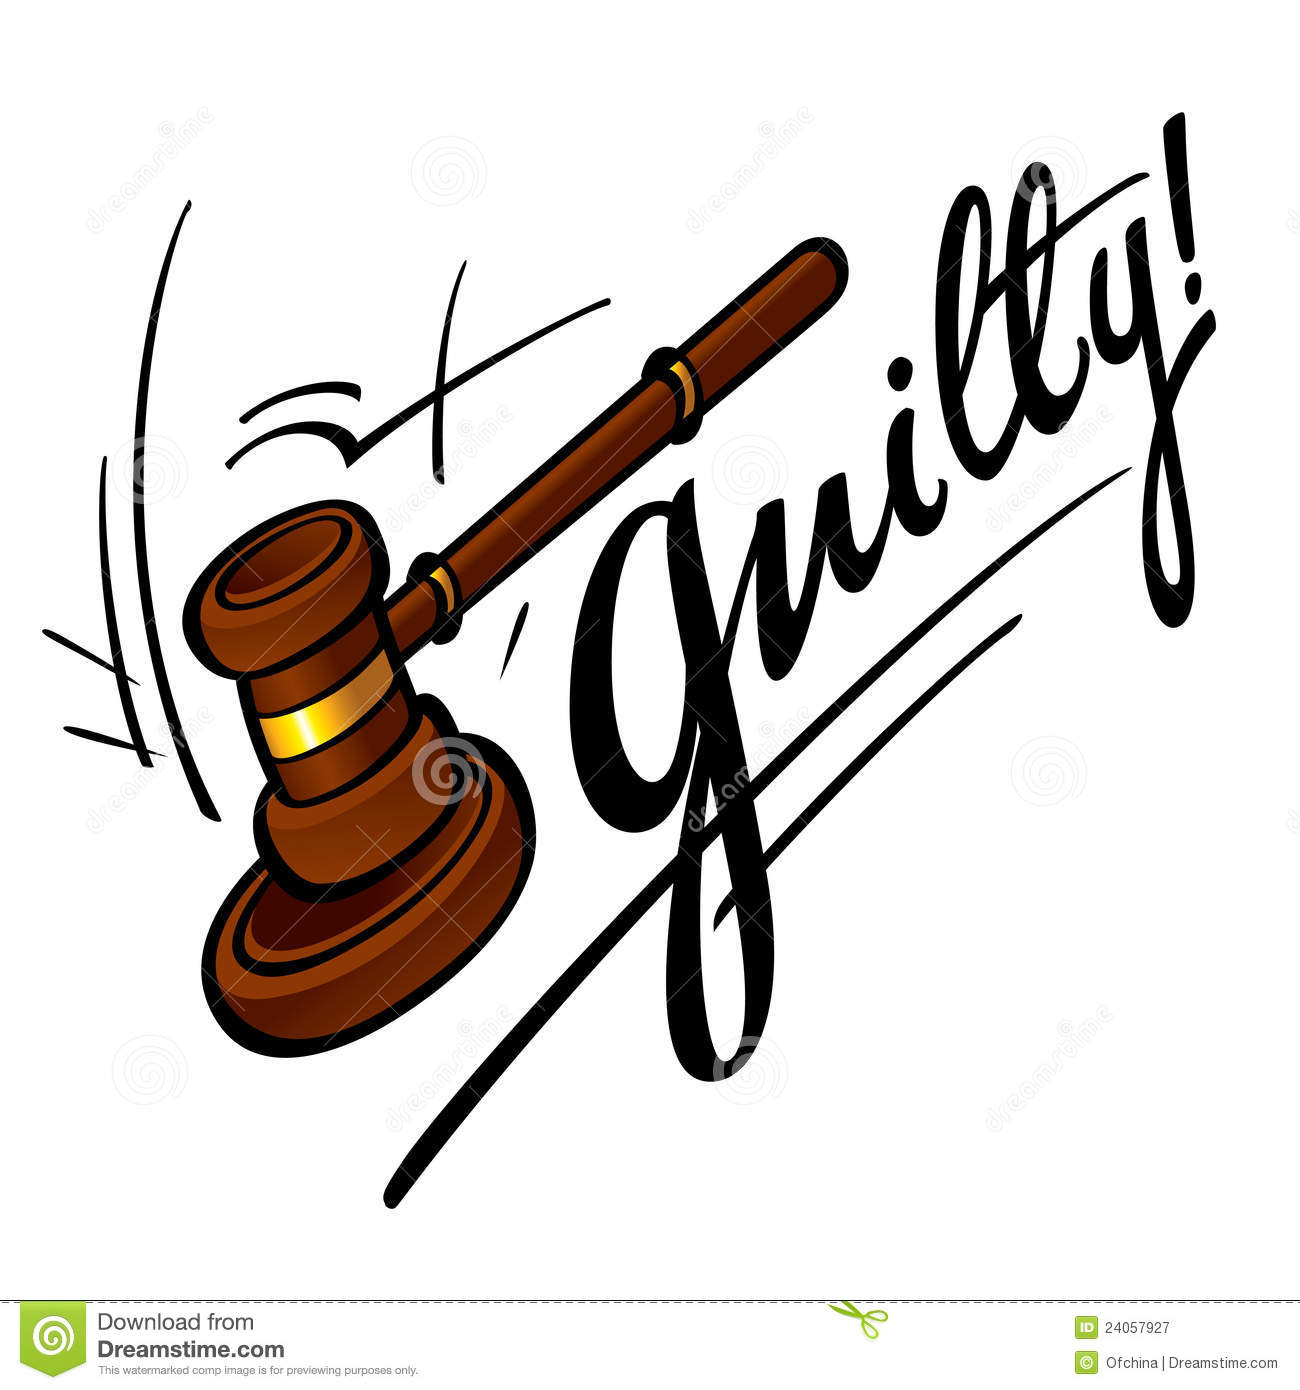 Guilty court judge wooden hammer crime sentence punishment.